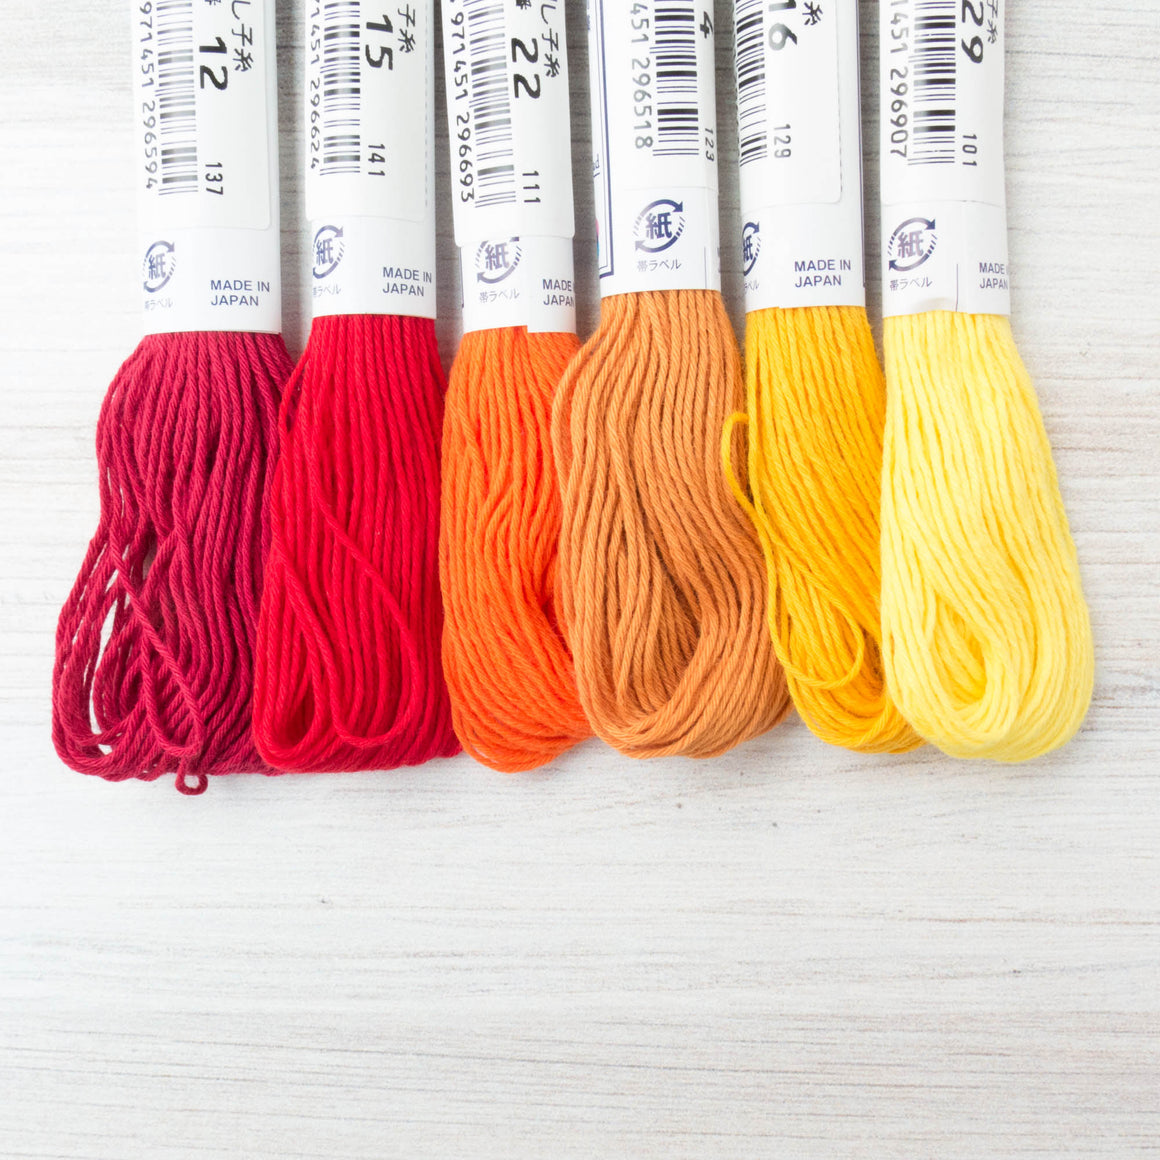 Sashiko Thread Set - Sunrise Collection Sashiko - Snuggly Monkey